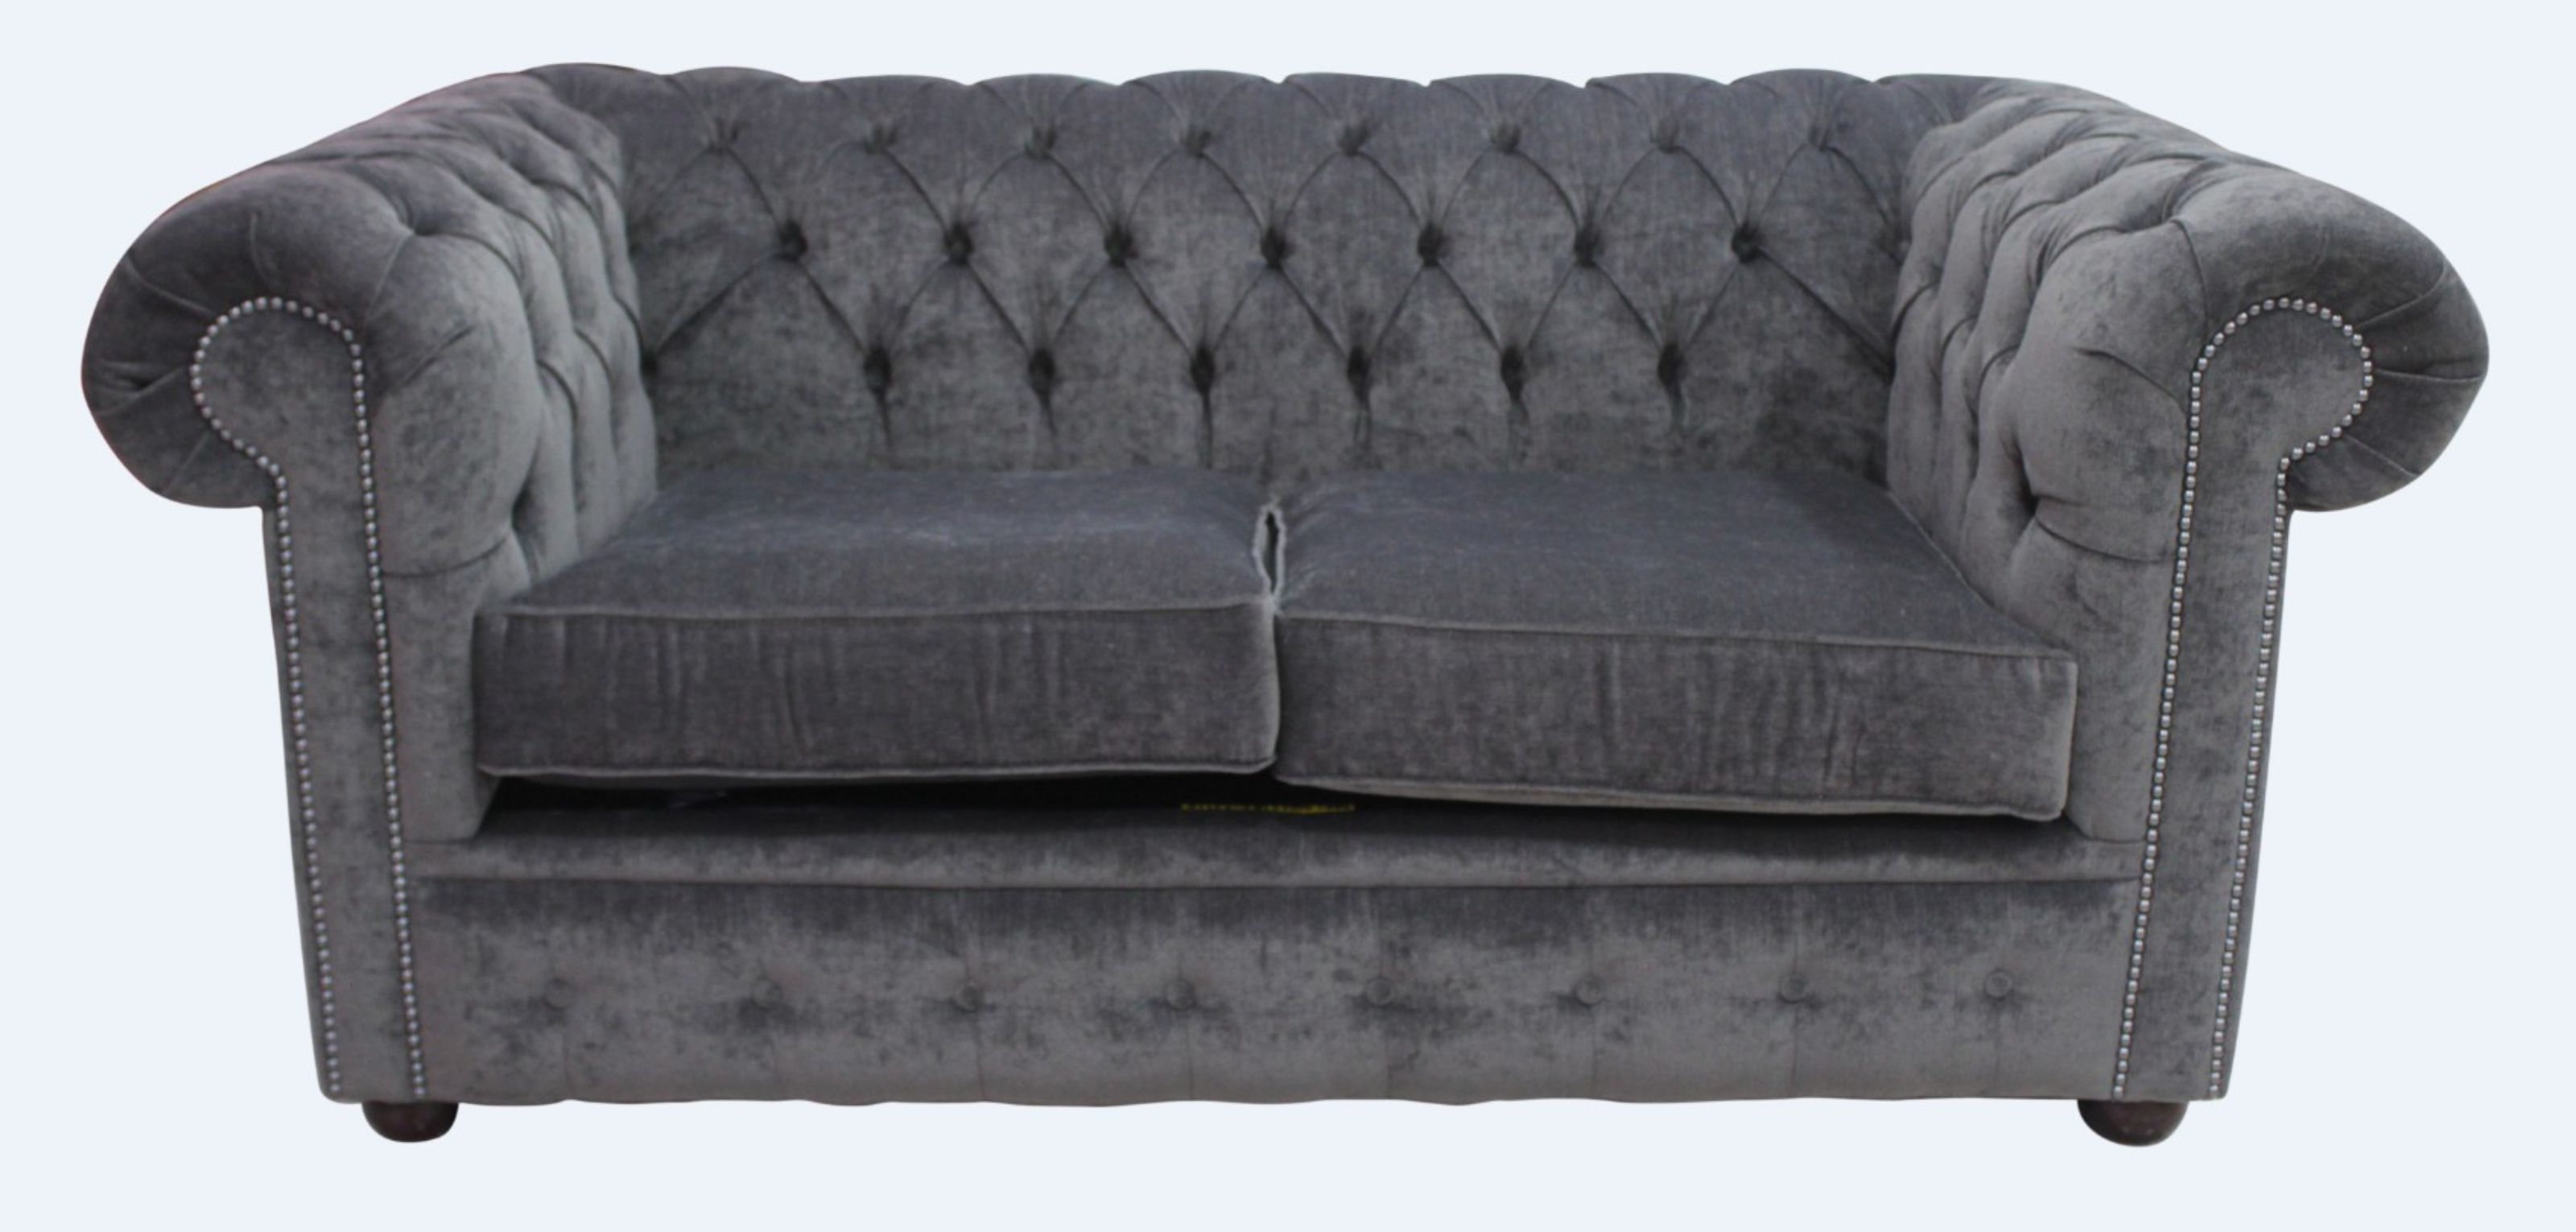 Chesterfield 2 Seater Settee Pimlico Charcoal Grey Fabric Sofa Offer